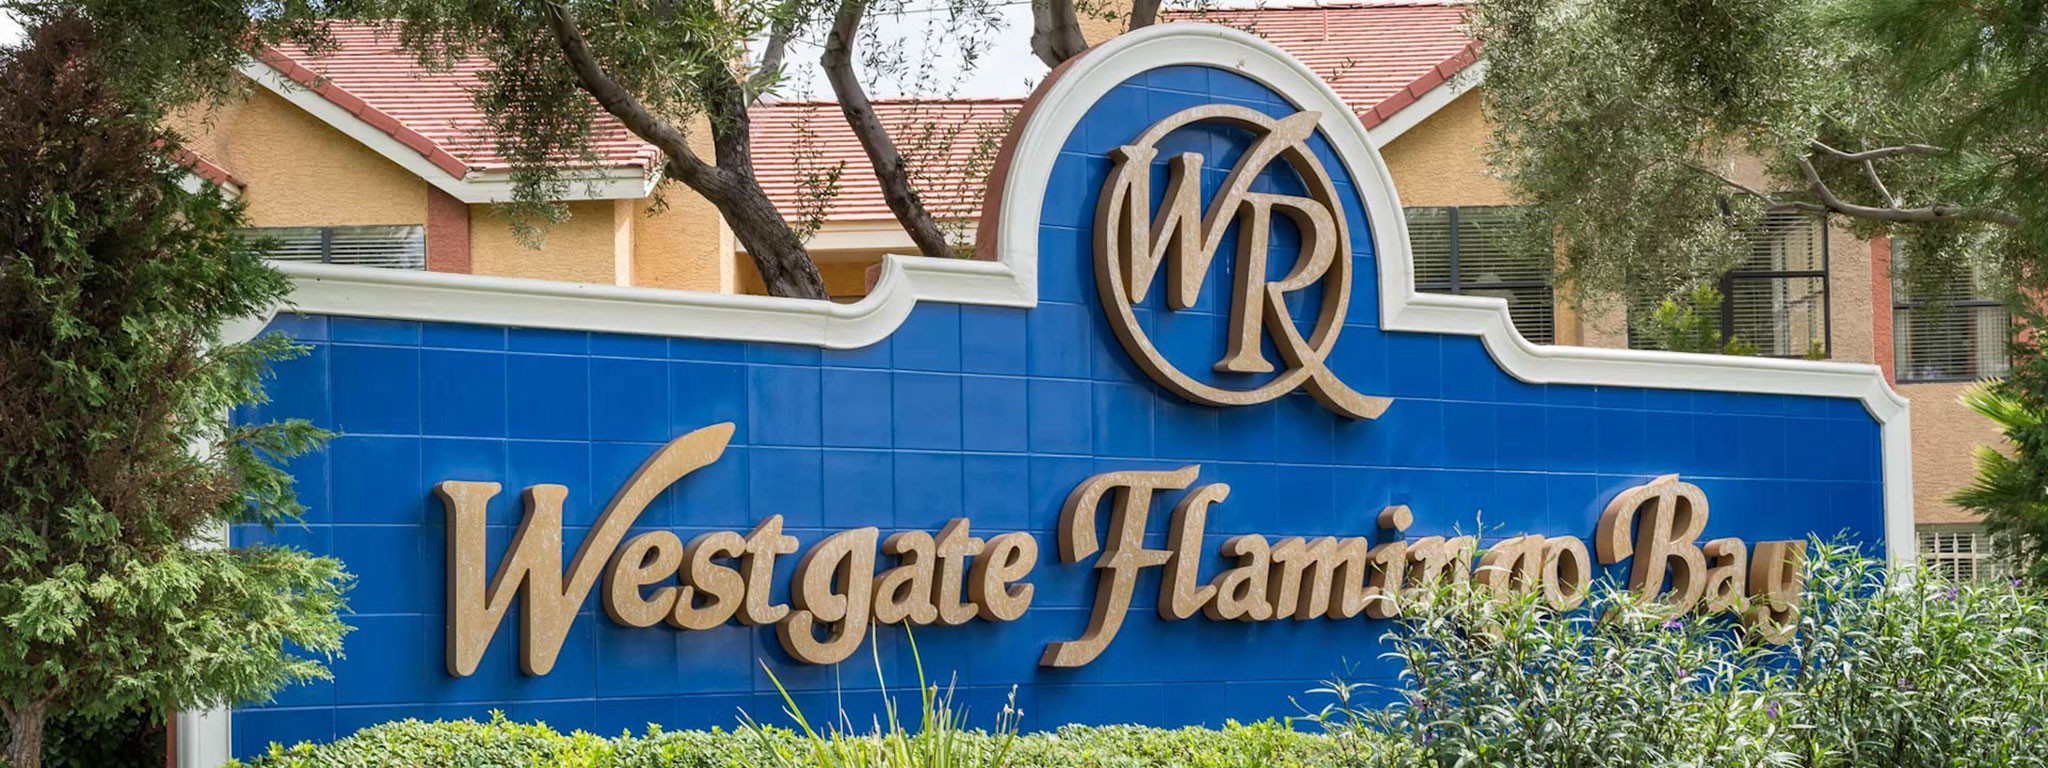 Westgate Flamingo Bay Resort in Las Vegas, Nevada, provides guests all the comforts of a fully furnished home, all within minutes of Las Vegas attractions, nonstop gaming action, world-class dining, shopping opportunities and trendy nightlife.